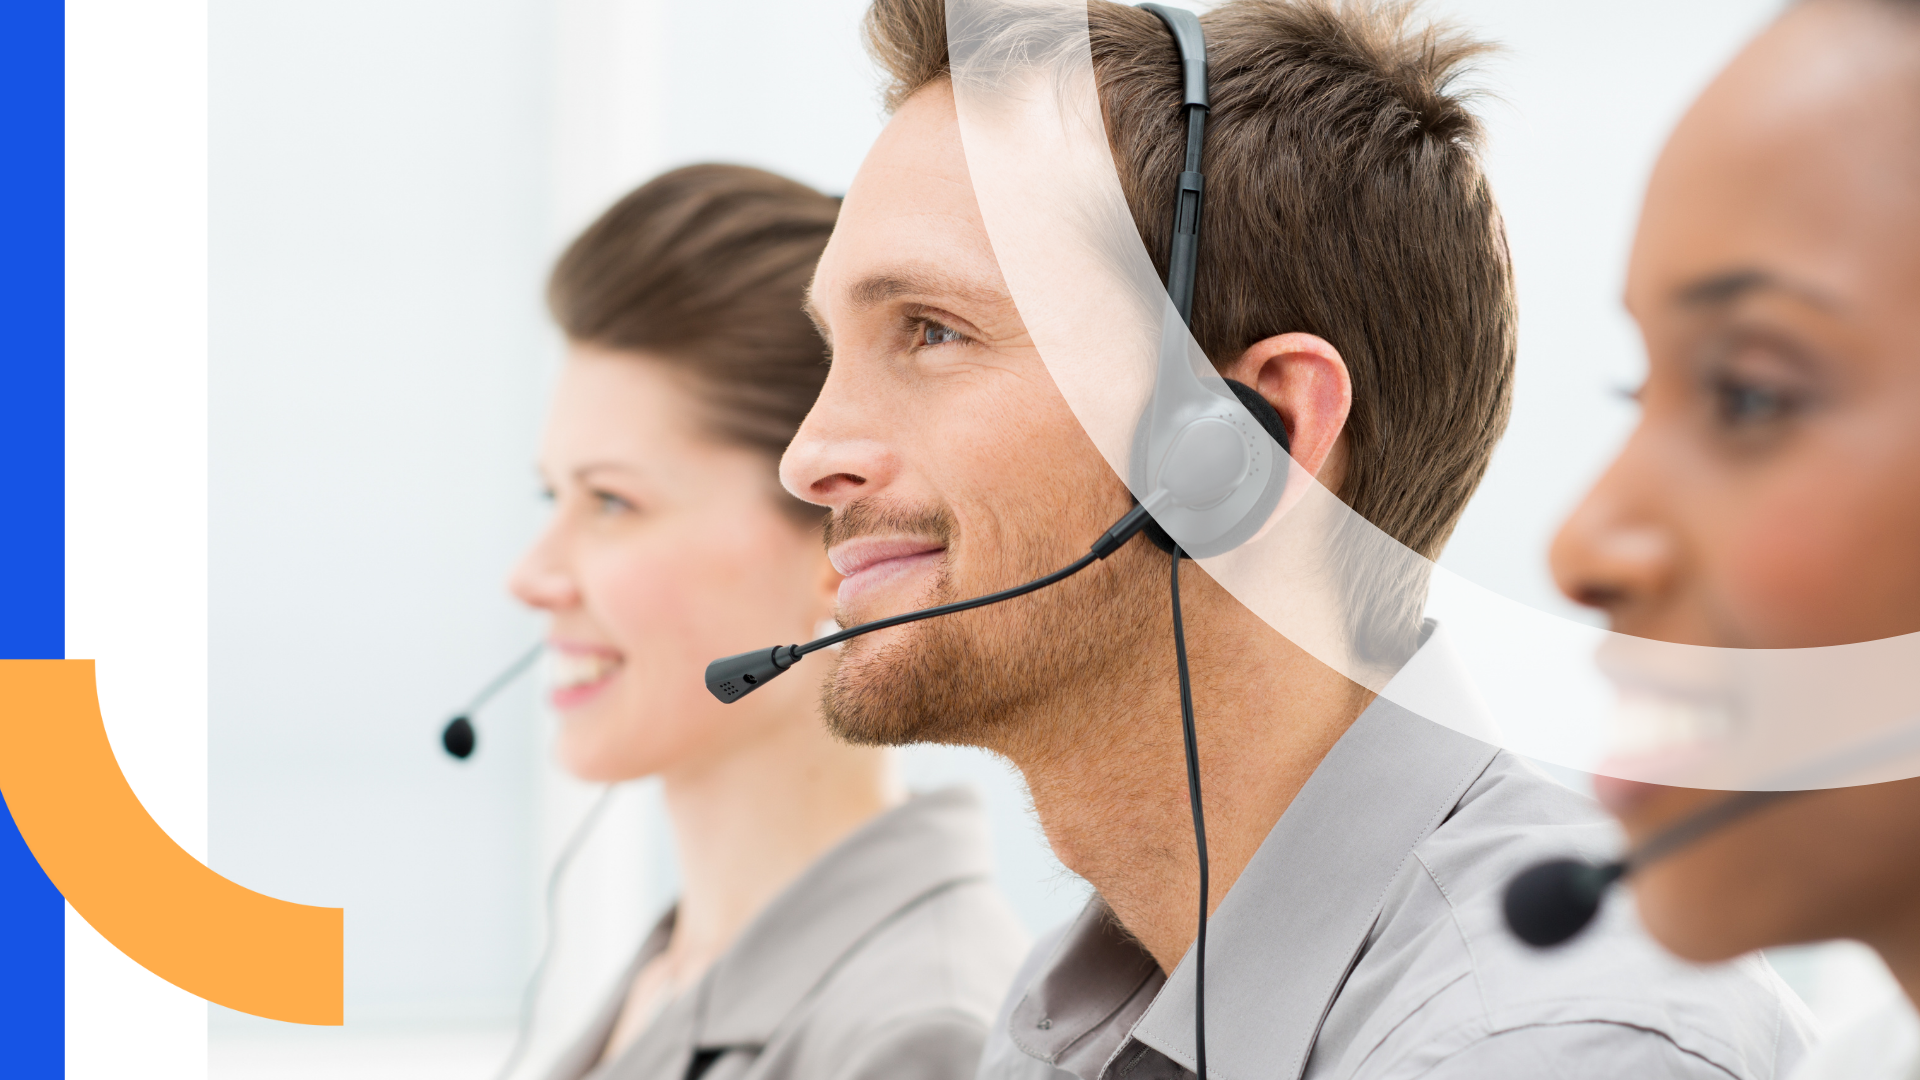 Contact center agents leveraging voice and video to drive an omnichannel customer experience.